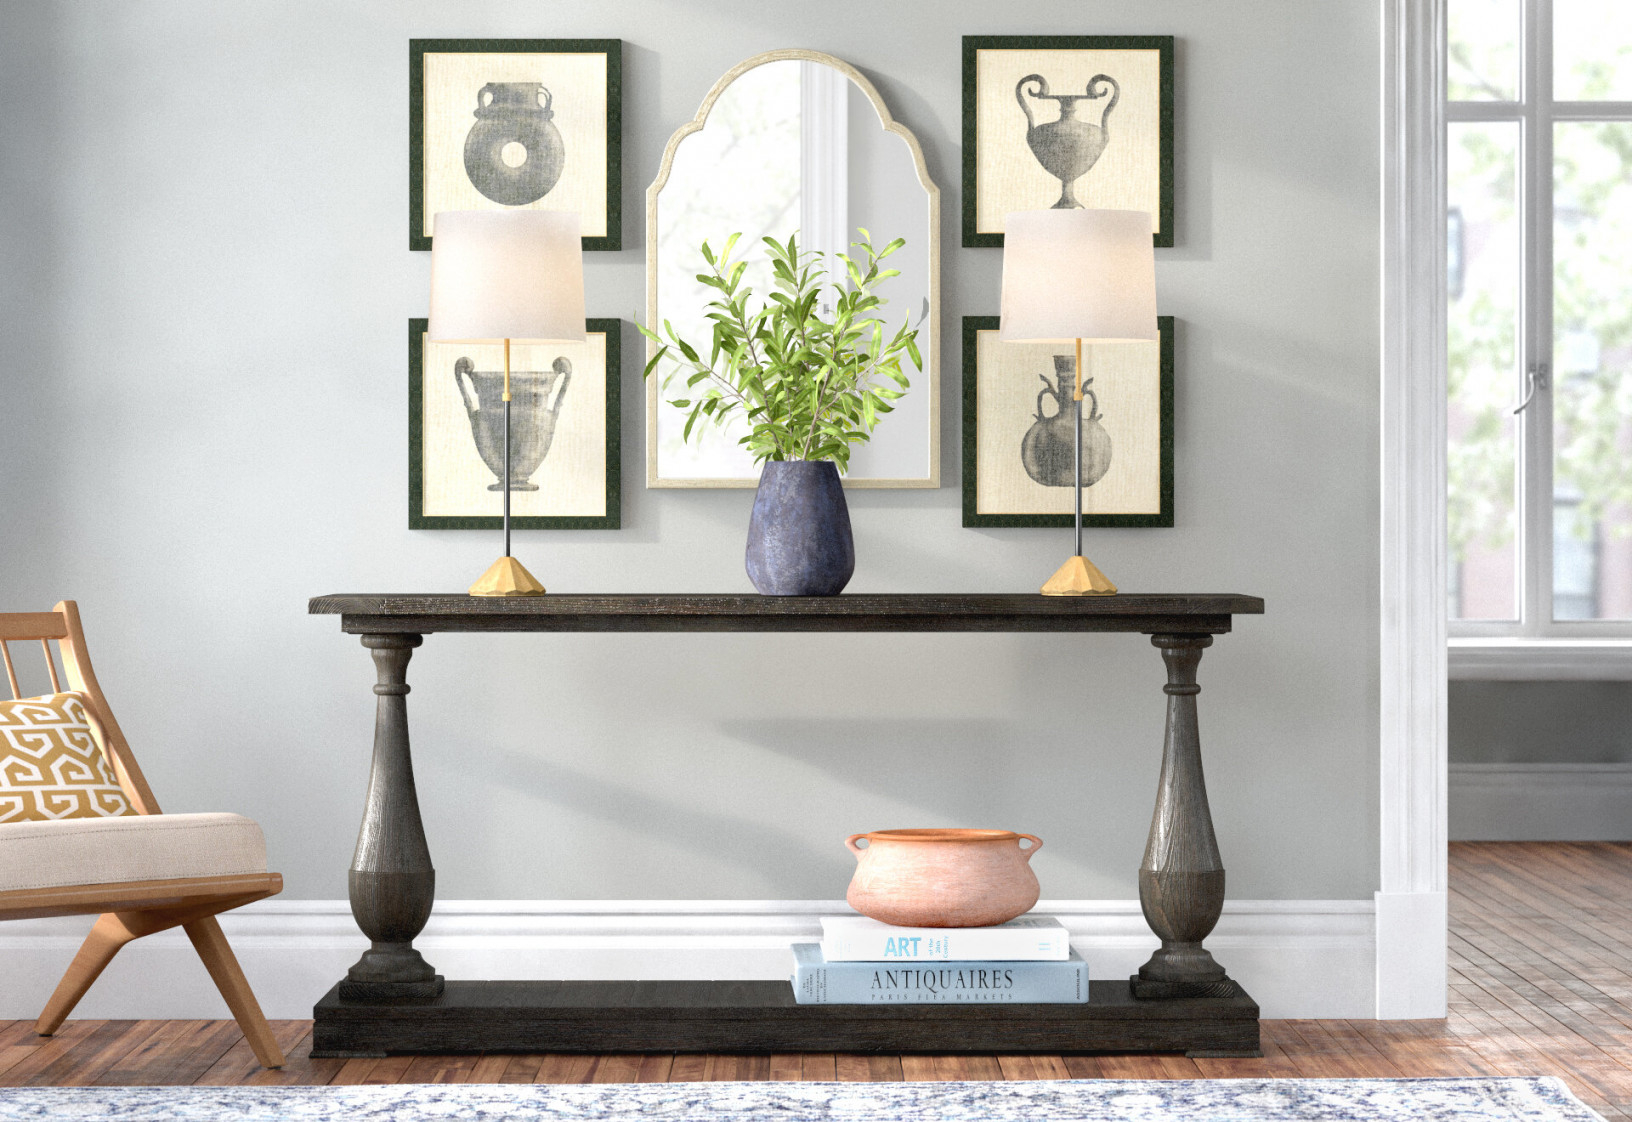 6 Ways To Style Your Console Table | Joss & Main for Wall Tables For Living Room